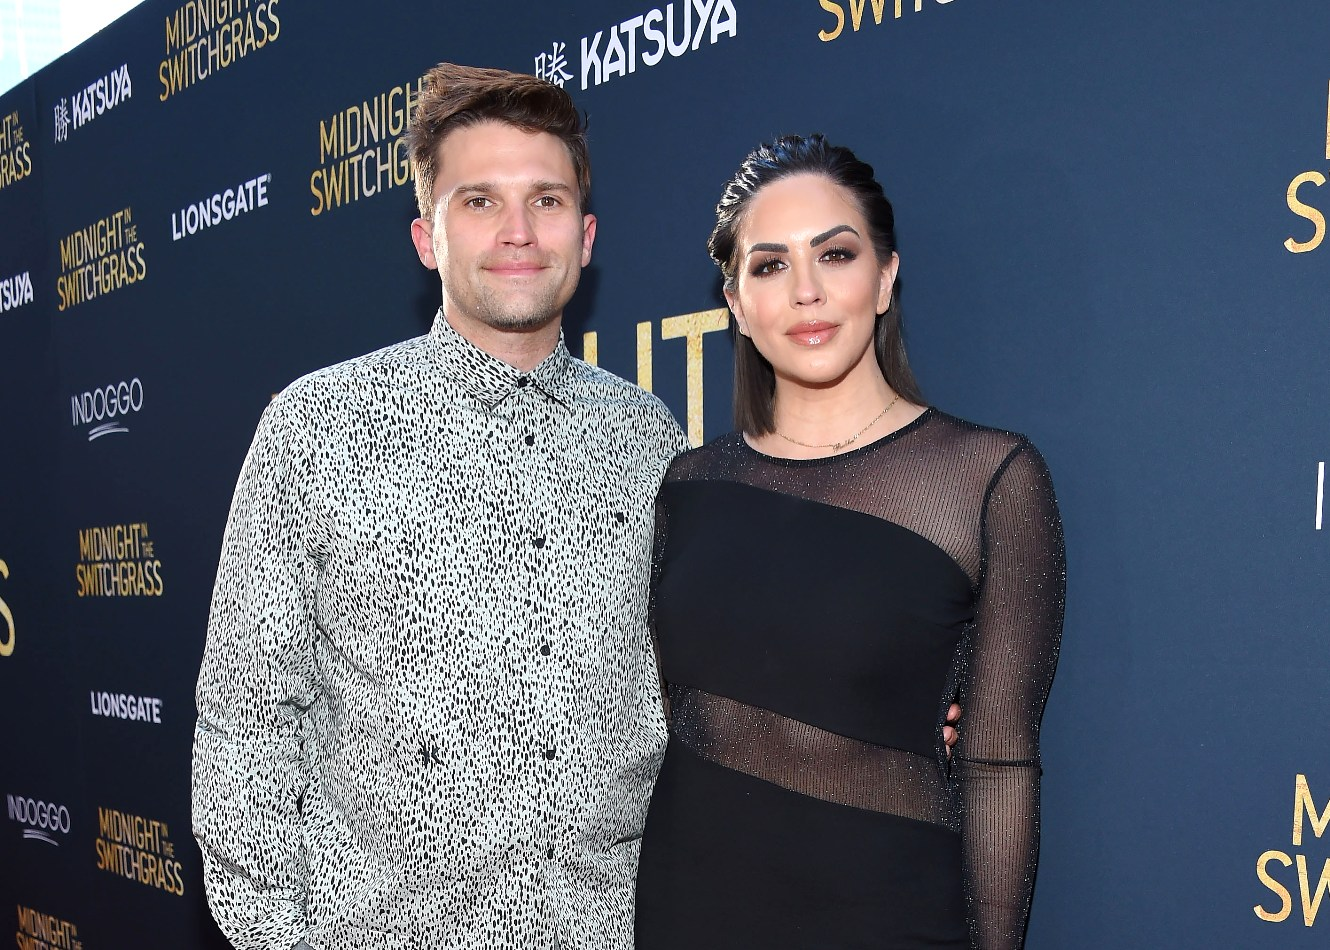 """Vanderpump Rules' Tom Schwartz Confirms He and Katie Maloney Were """"Really Working"""" on a Baby Amid Quarantine, Confirms Plans for a New Bar With Tom Sandoval"""